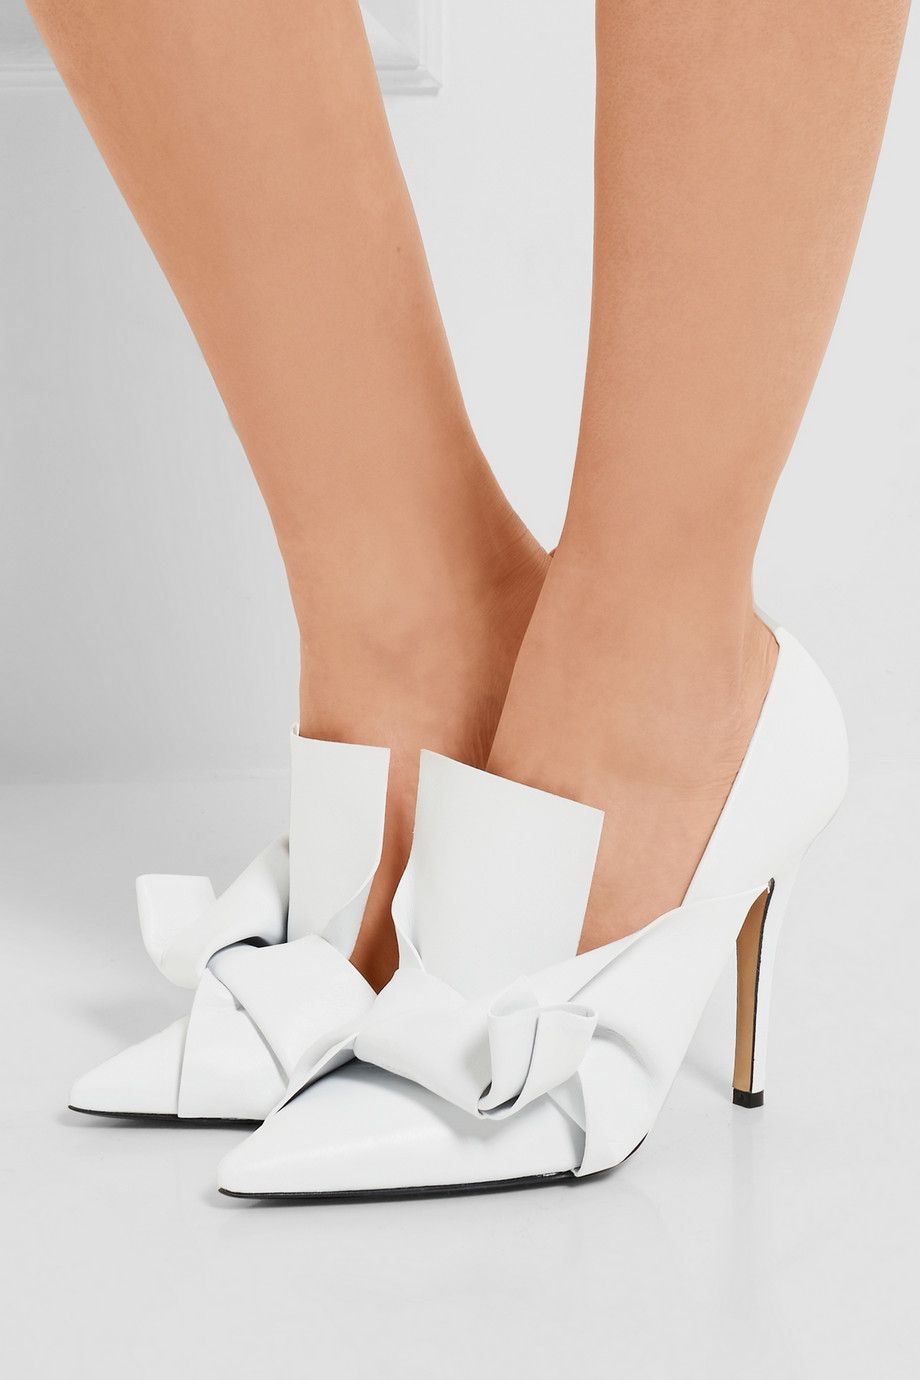 Latest For Sale knotted stiletto sandals - White N Discount Wholesale Price Cheap From China Deals Sale Online 3Yj1U